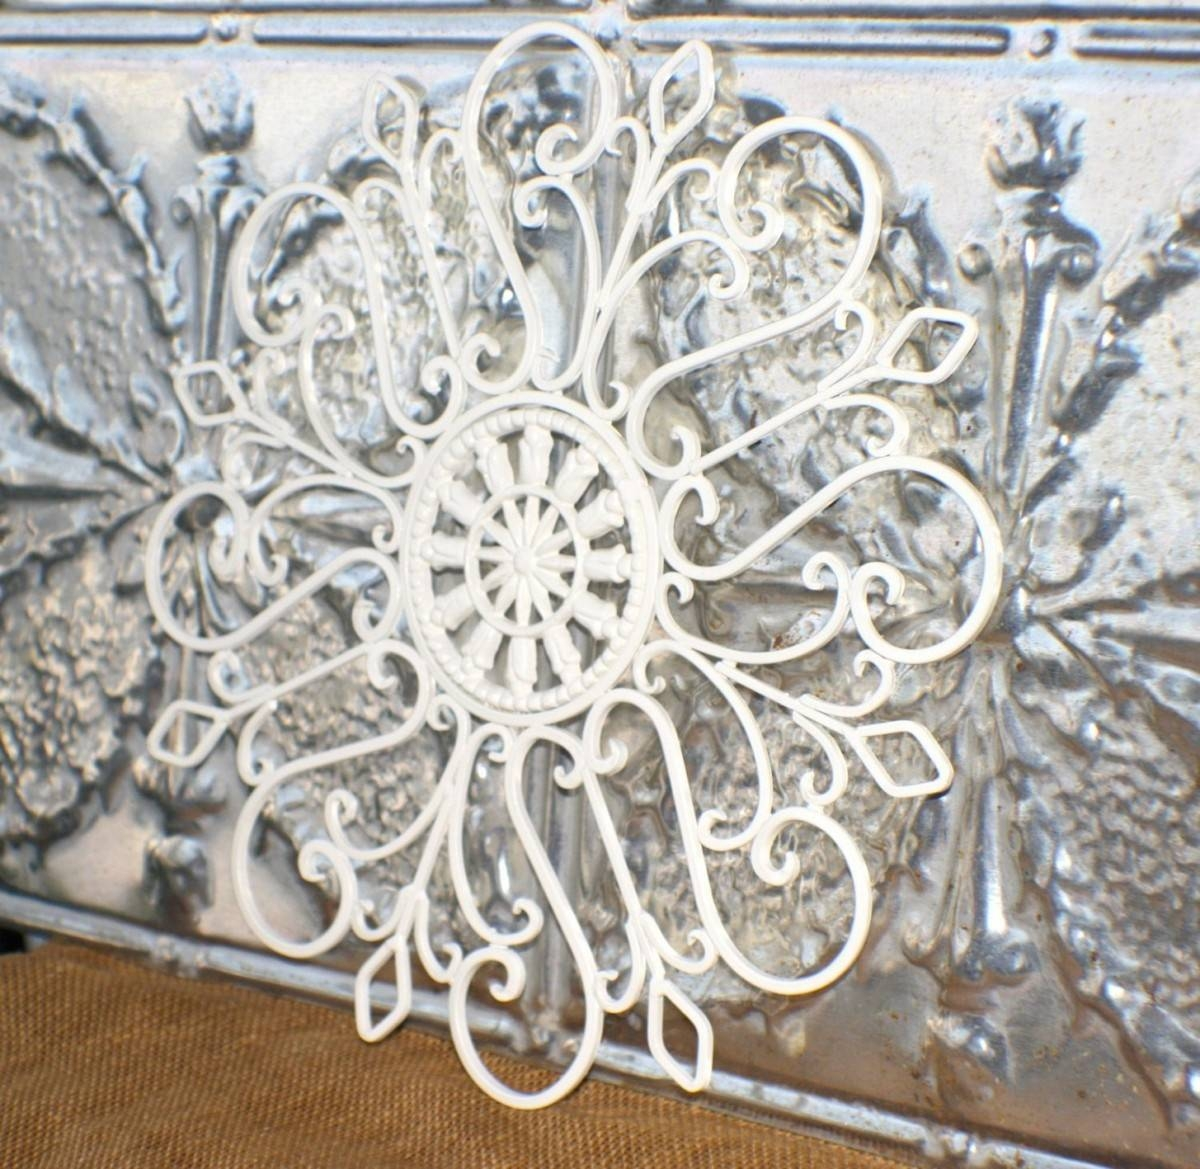 Awesome Metal Wall Art Decor And Sculptures Pertaining To Most Current Metal Large Outdoor Wall Art (View 10 of 25)